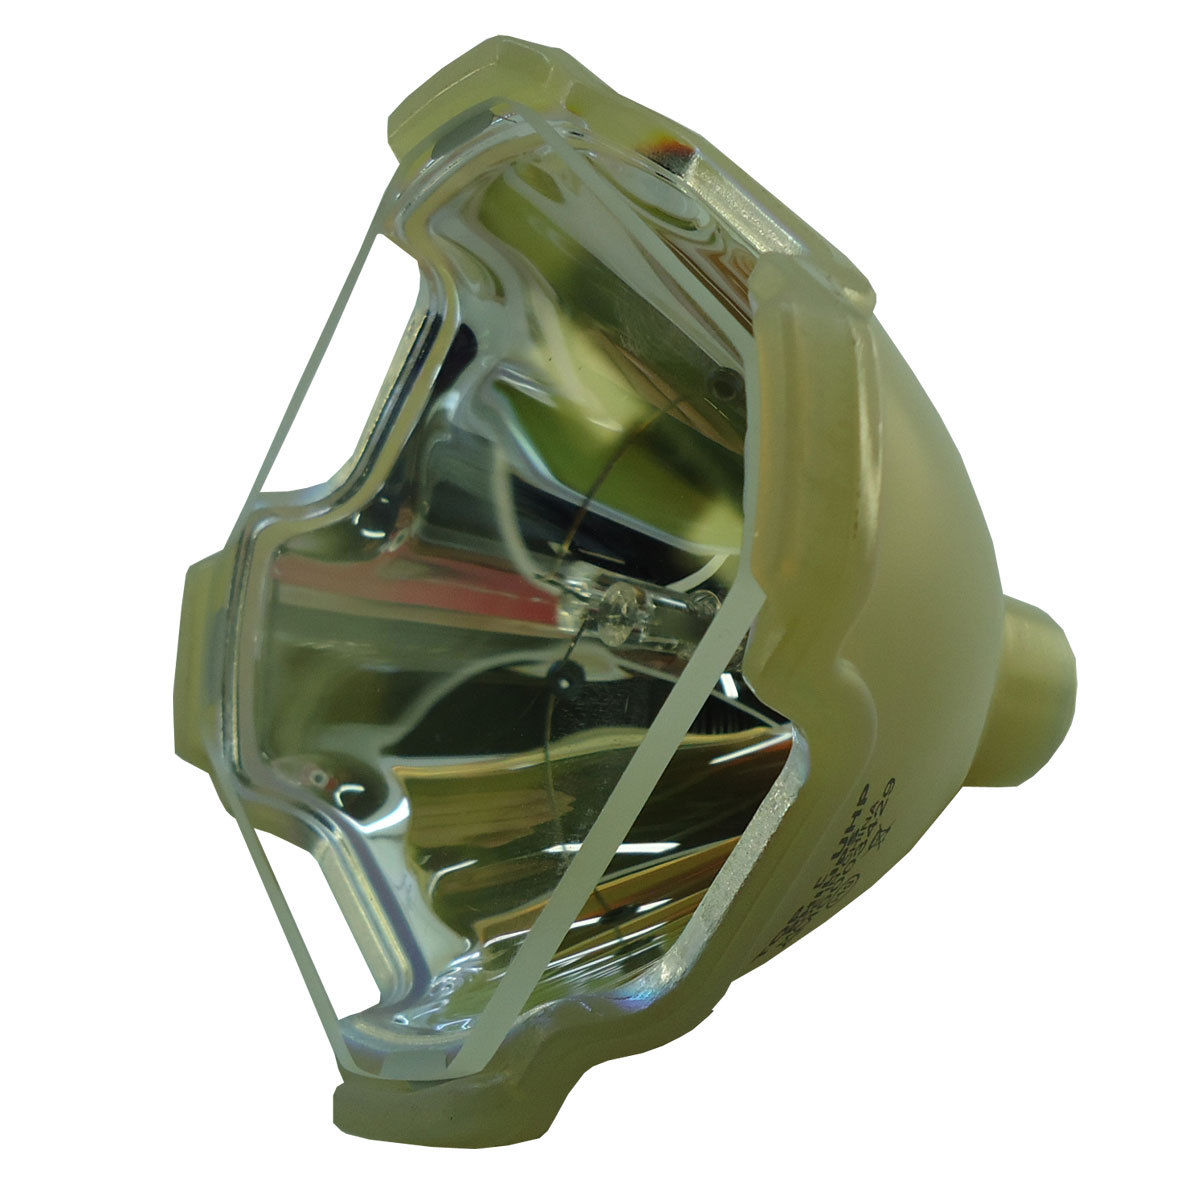 Compatible Bare Bulb LMP-P260 LMPP260 for Sony VPL-PX35 PX35 VPL-PX40 PX40 VPL-PX41 PX41 Projector Bulb Lamp without housing original replacement projector lamp bulb lmp f272 for sony vpl fx35 vpl fh30 vpl fh35 vpl fh31 projector nsha275w